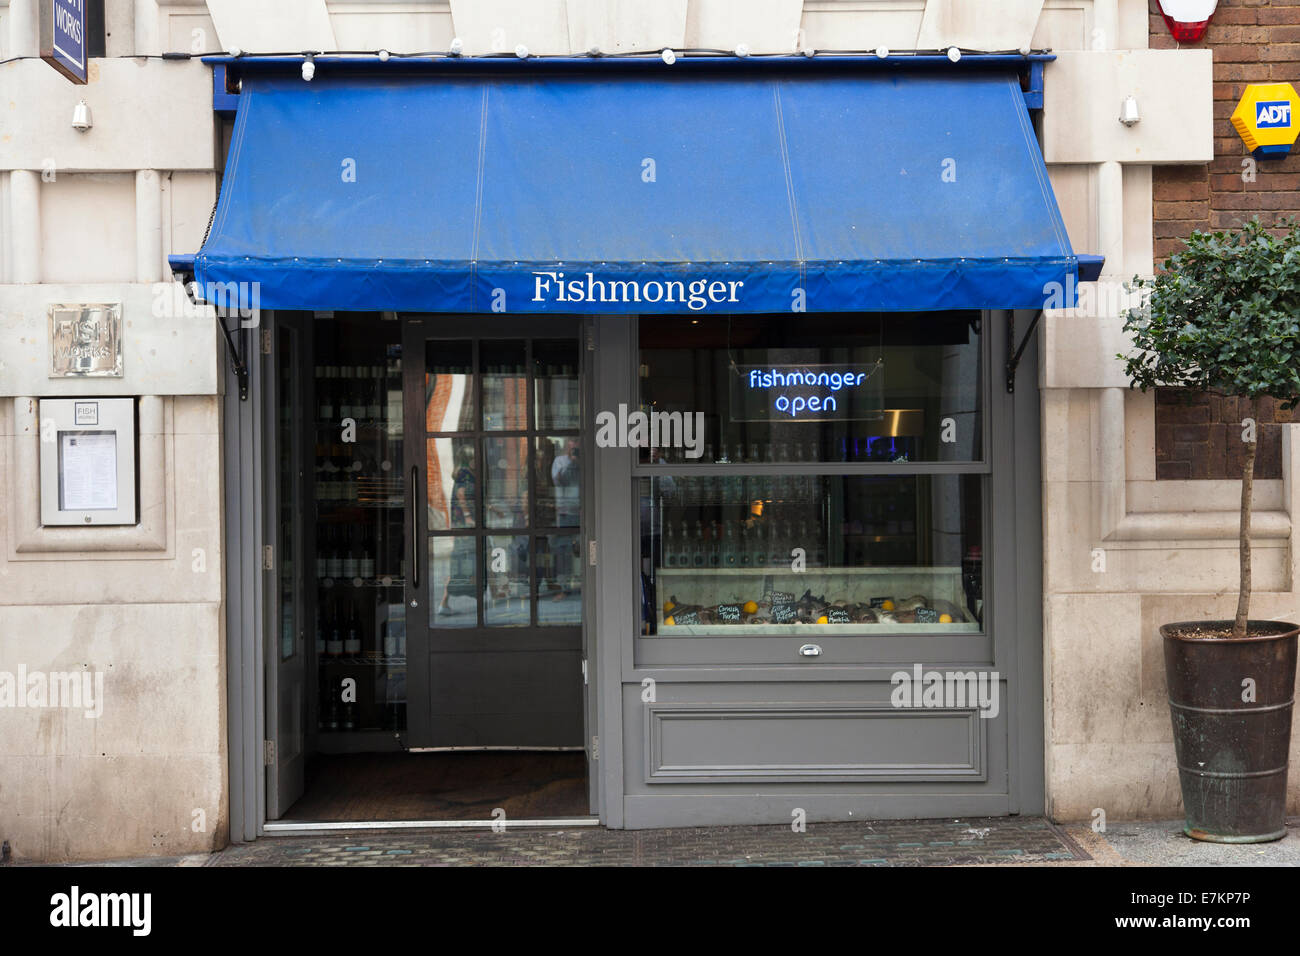 FishWorks fishmonger and restaurant on Swallow Street, Piccadilly, London, England, U.K. Stock Photo